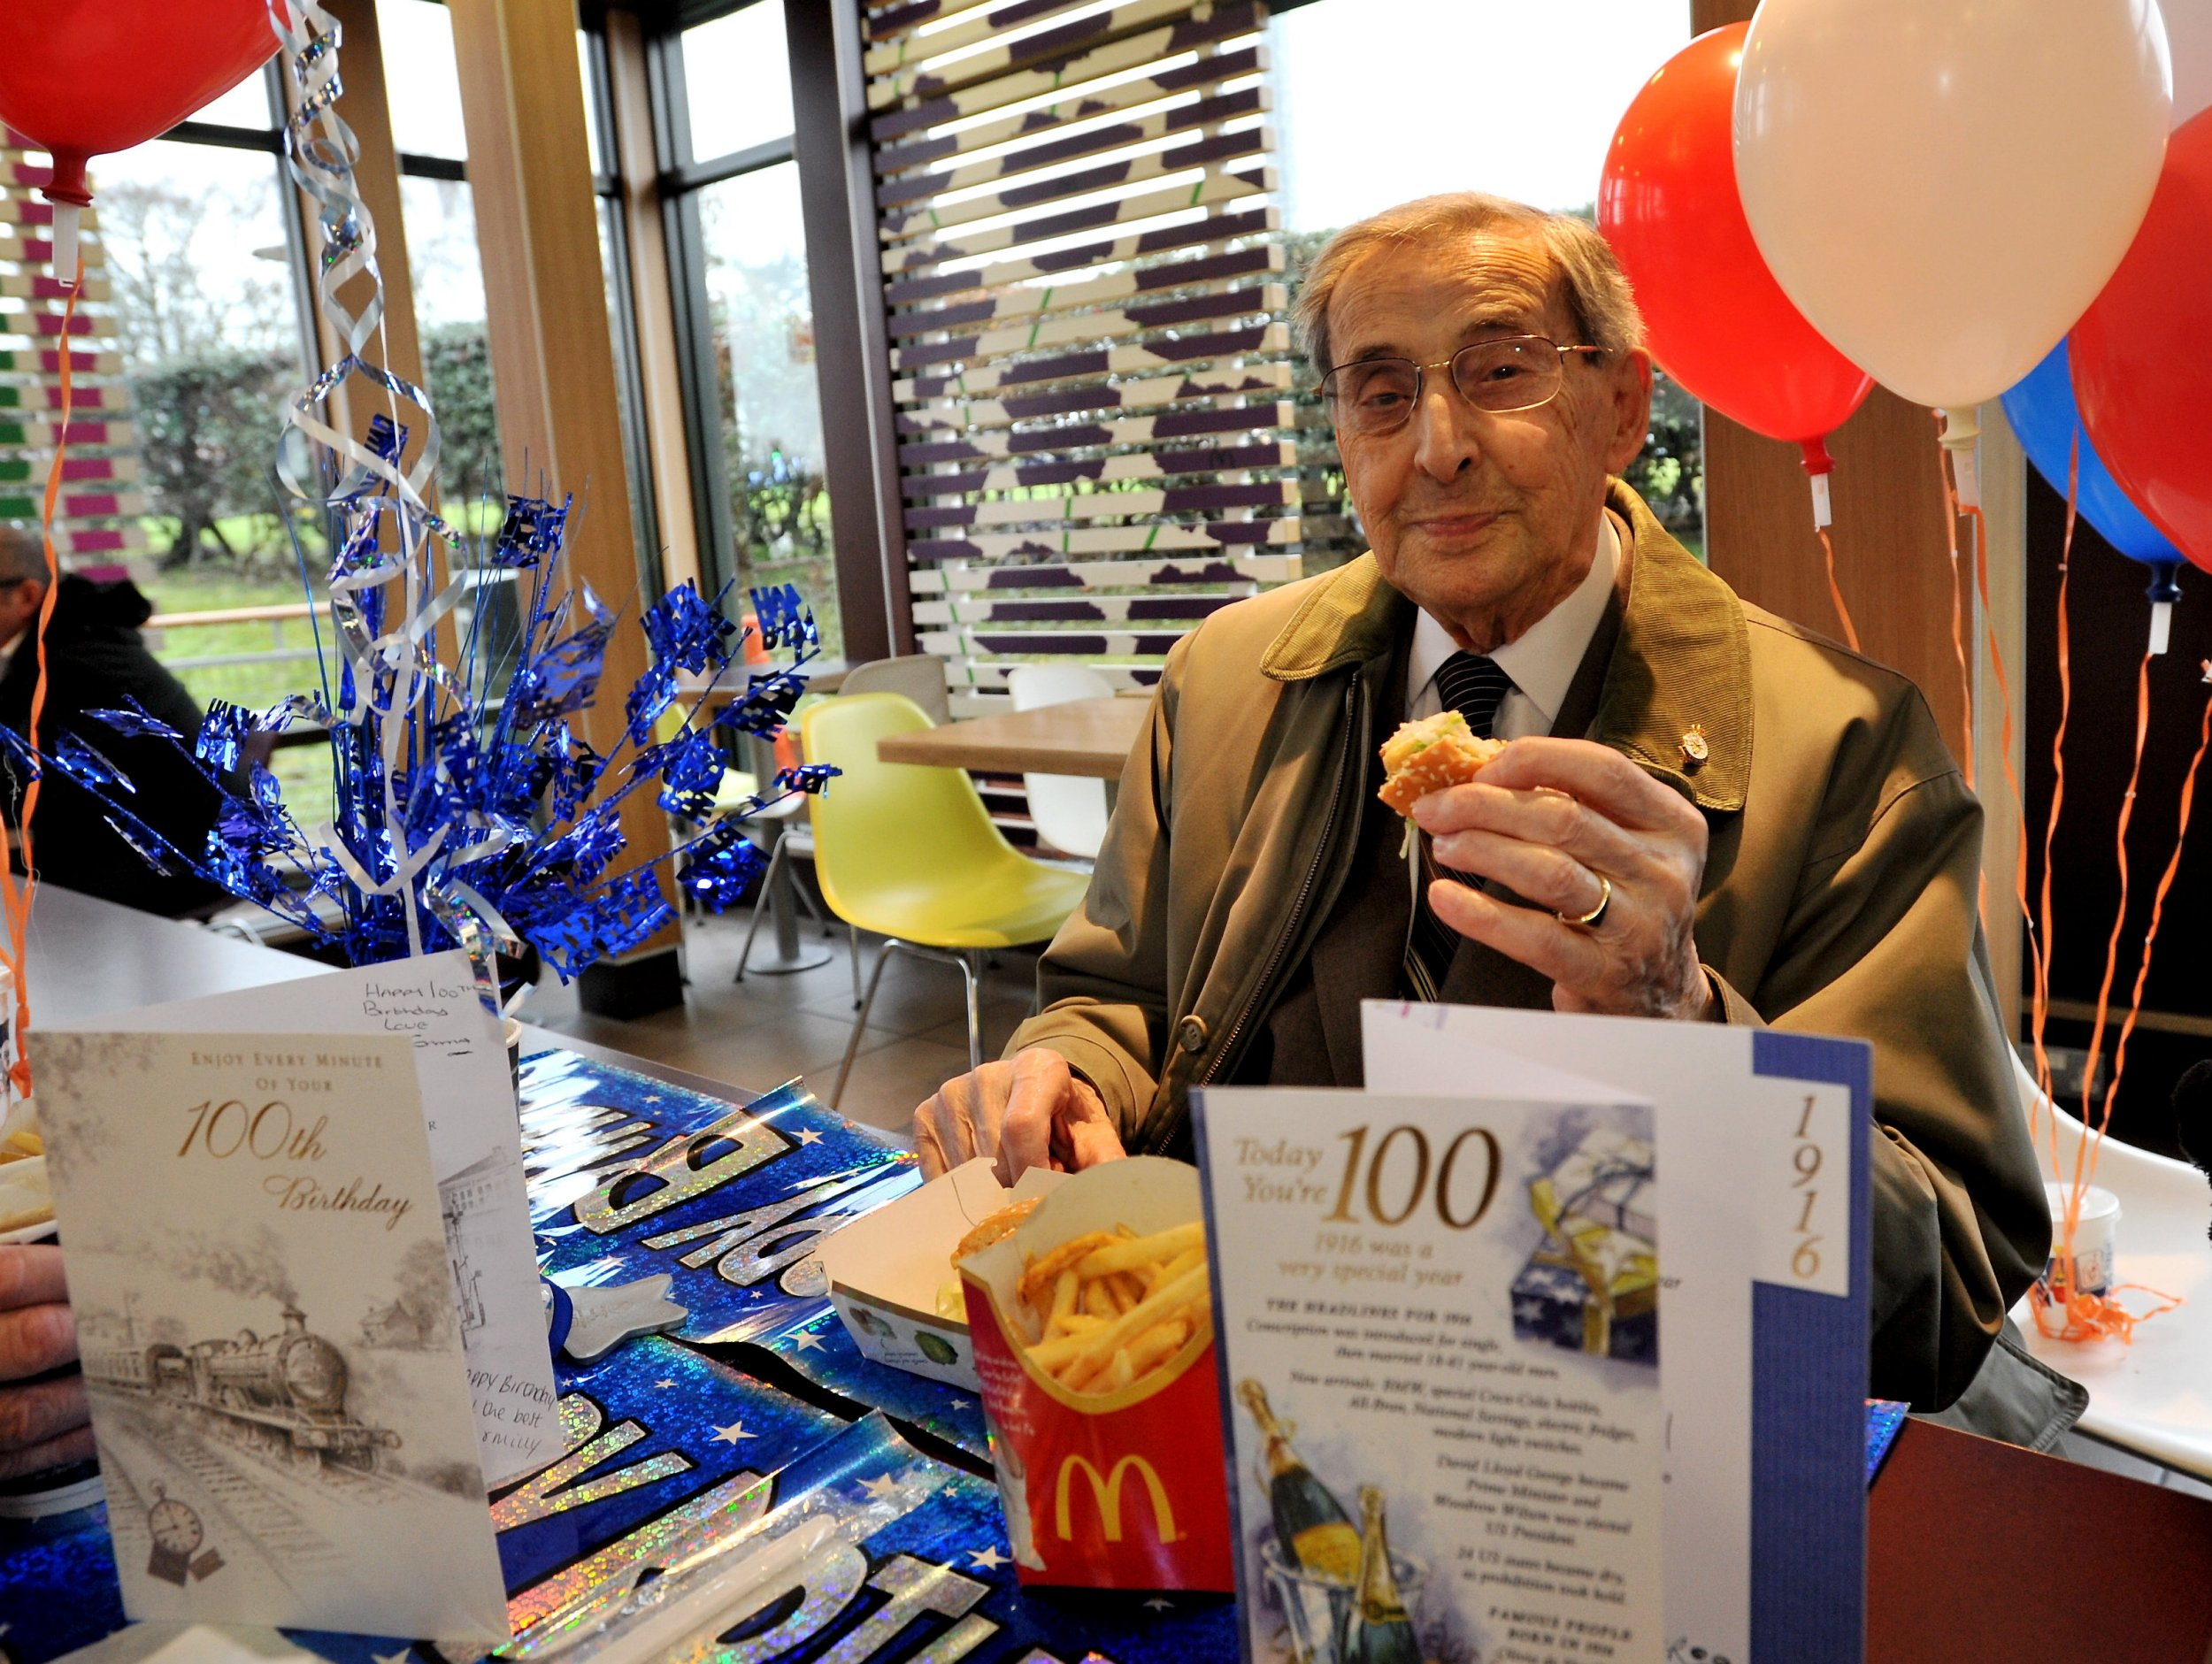 100-year-old Arthur Probert enjoying McDonalds as part his birthday celebrations. A UTTOXETER centenarian marked his milestone birthday in an unusual way ñ by enjoying his favourite meal at fast food giant McDonald's. While Arthur Probert, who lives near to Thomas Alleyne's High School, also enjoyed a party with loved ones and a very special coffee morning with his friends from St Mary's Parish Church, the father-of-two knew the only real way to mark turning 100 was to tuck into a McChicken Sandwich meal. He opted for the unusual birthday treat to continue a weekly tradition of heading to the restaurant for a bite to eat. Mr Probert also told the Advertiser that his secret to a long life was his 'very good wife' Doris, who he celebrated his 70th wedding anniversary with before he lost her at the age of 95 four years ago.